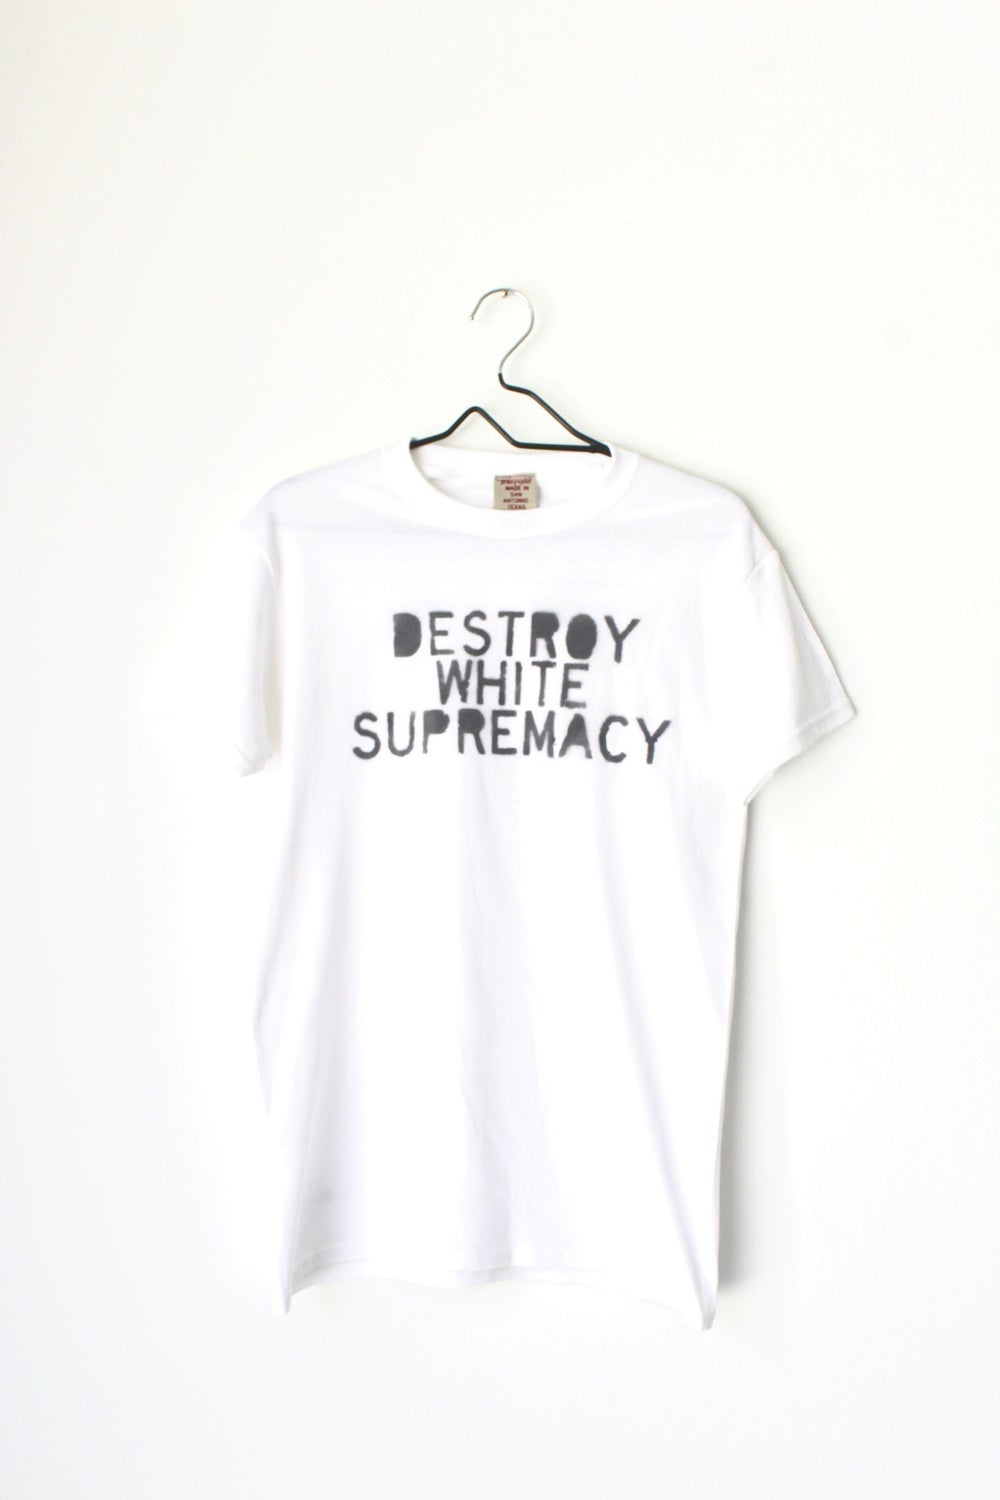 destroy white supremacy rd.2 tee in white